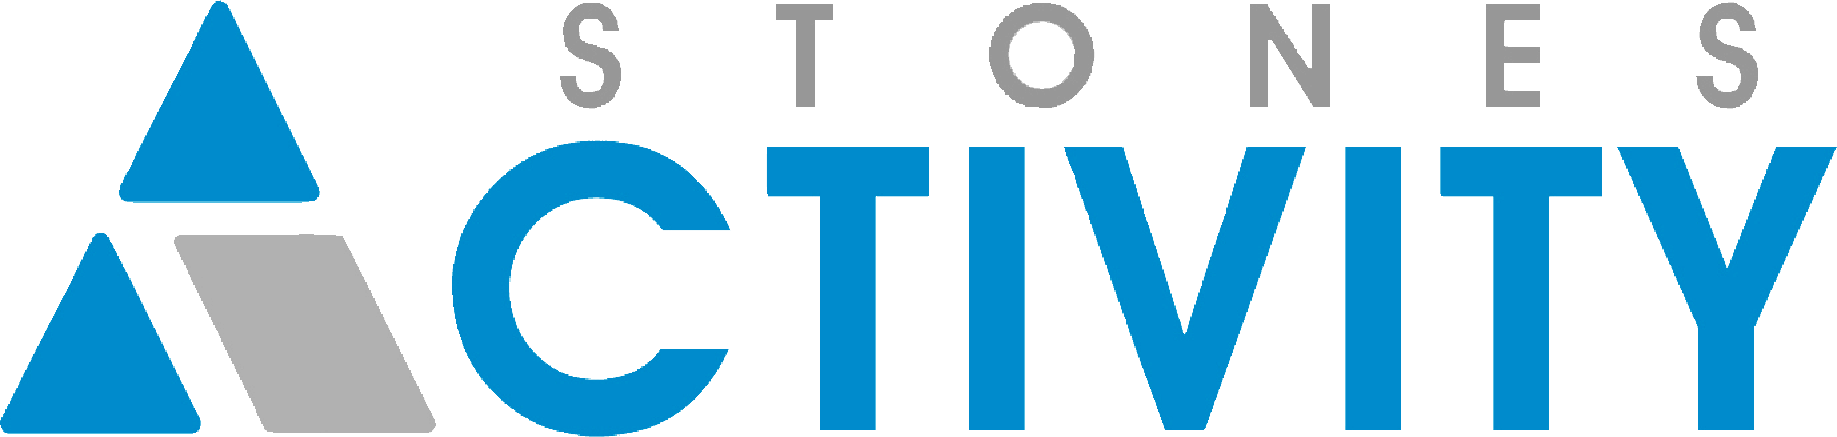 Activity Stones Oy - logo